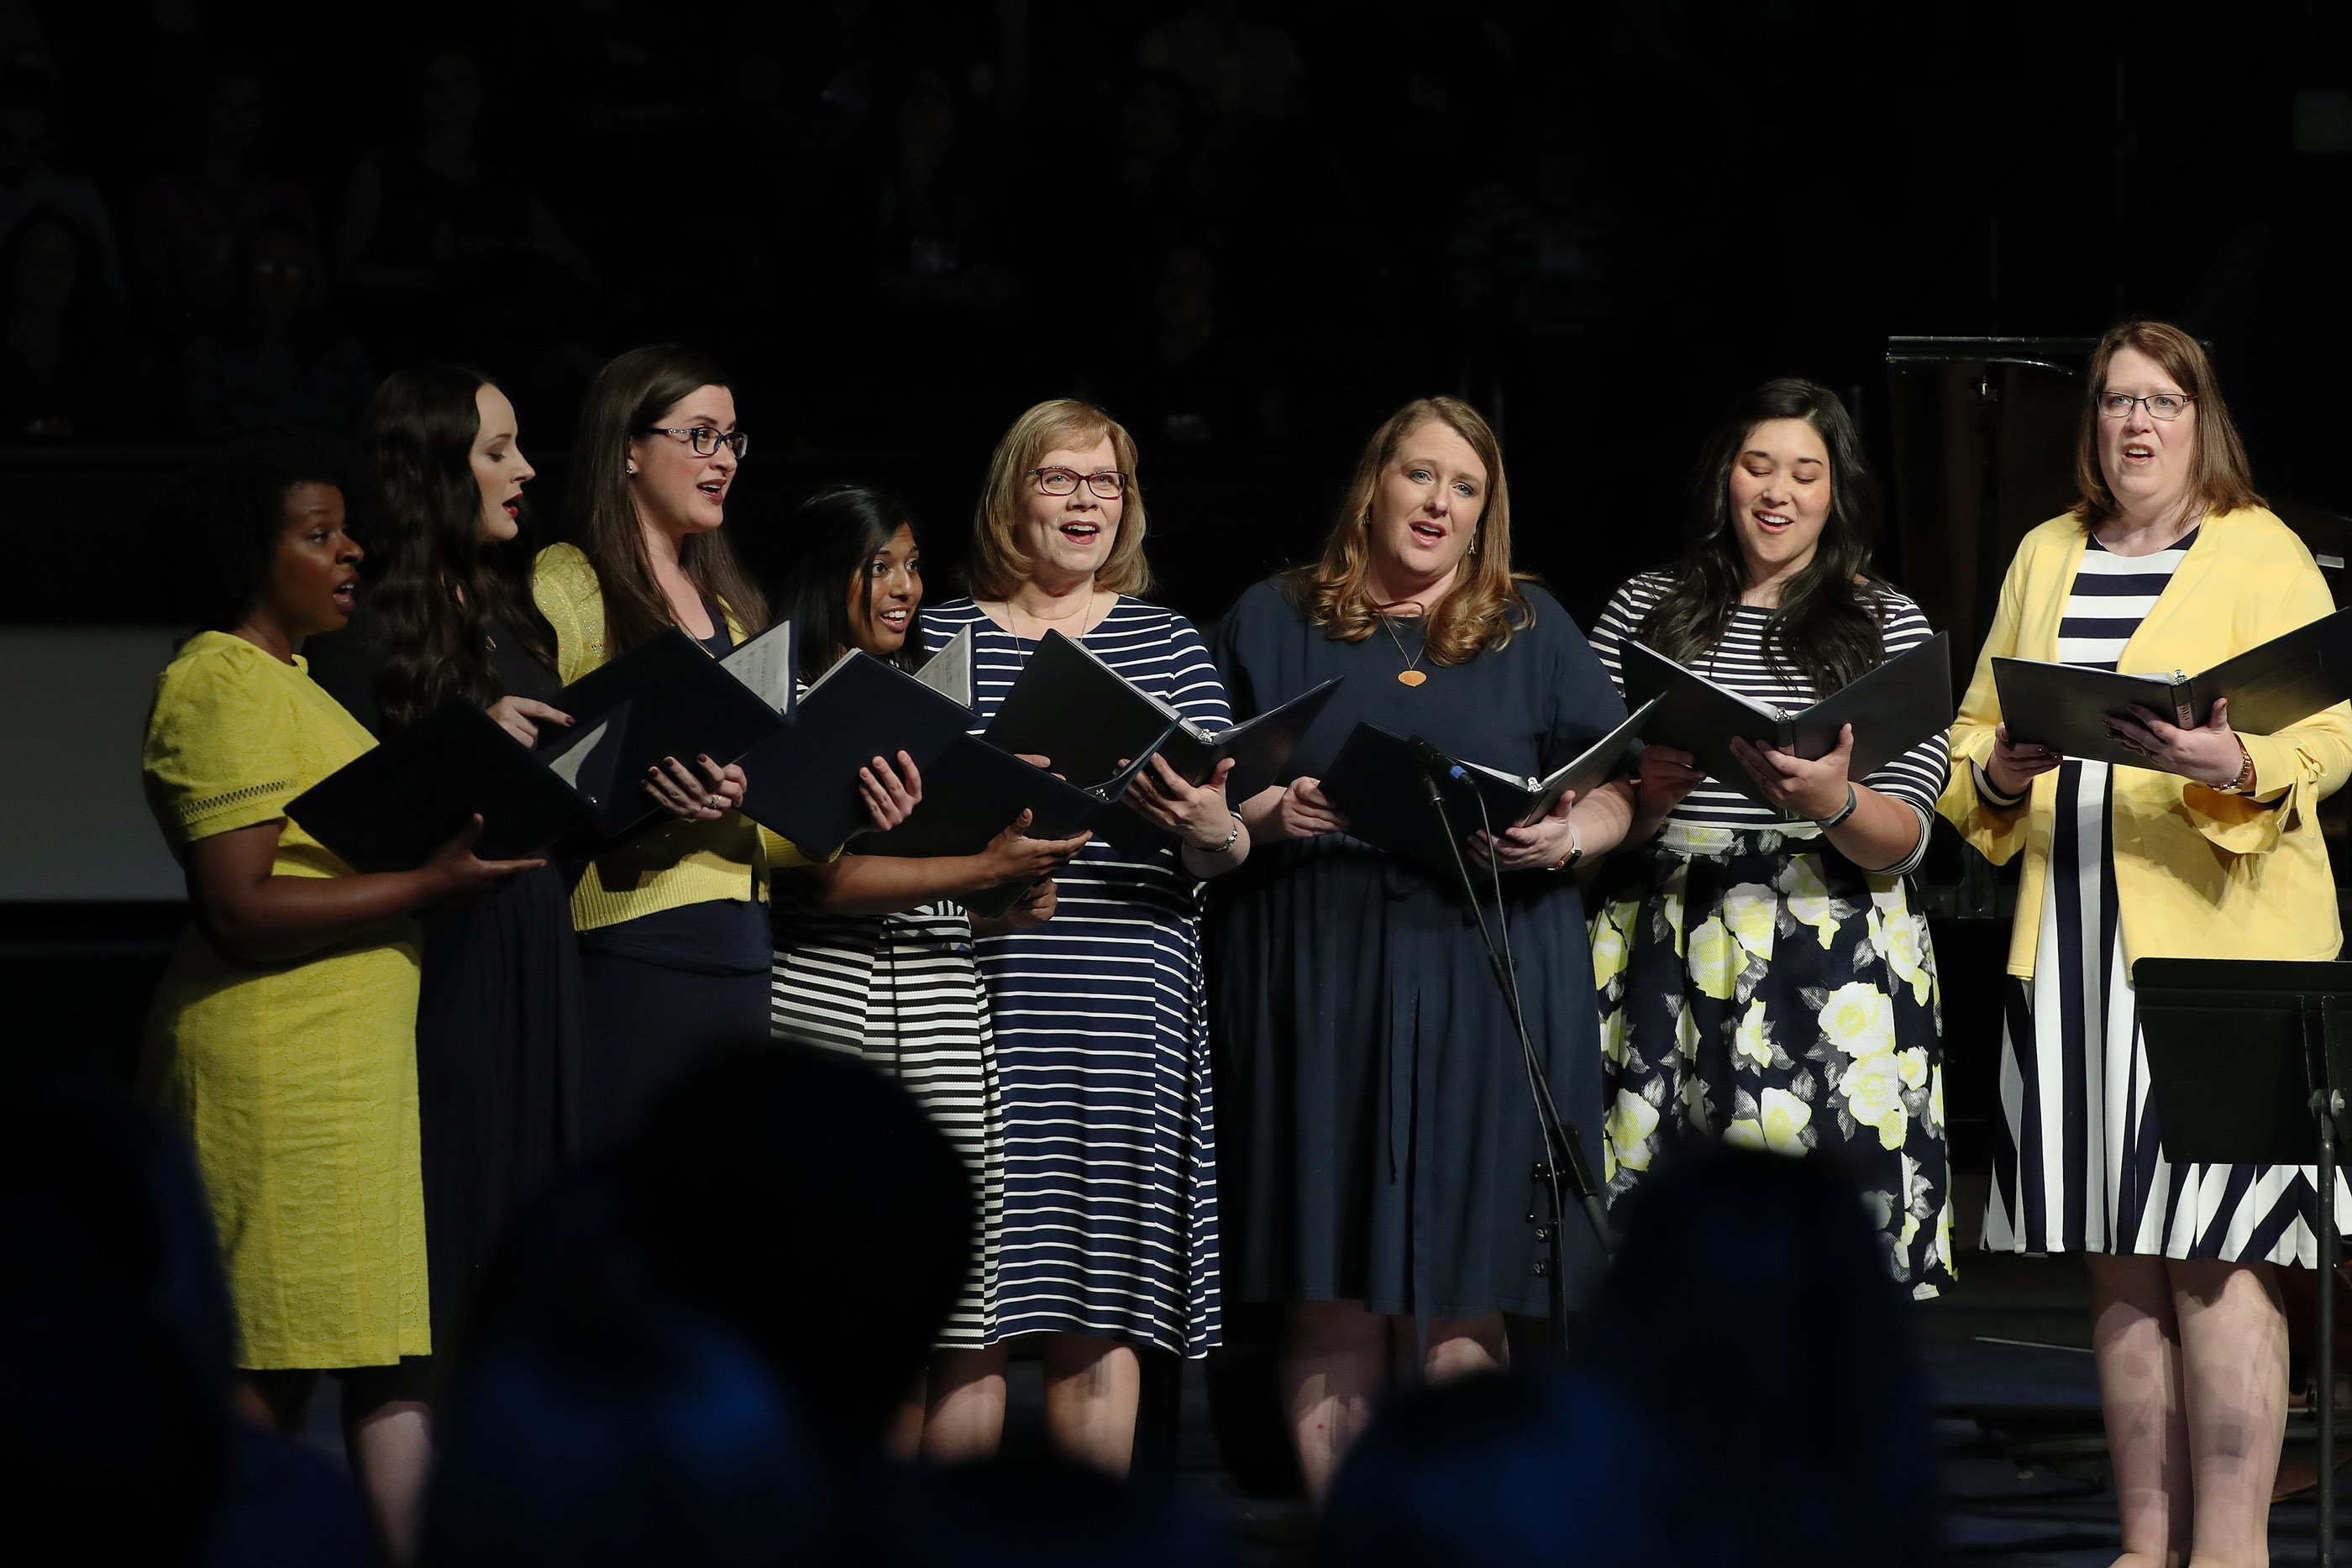 The Tabernacle Choir octet sing at a devotional during BYU Women's Conference in Provo on Friday, May 3, 2019.